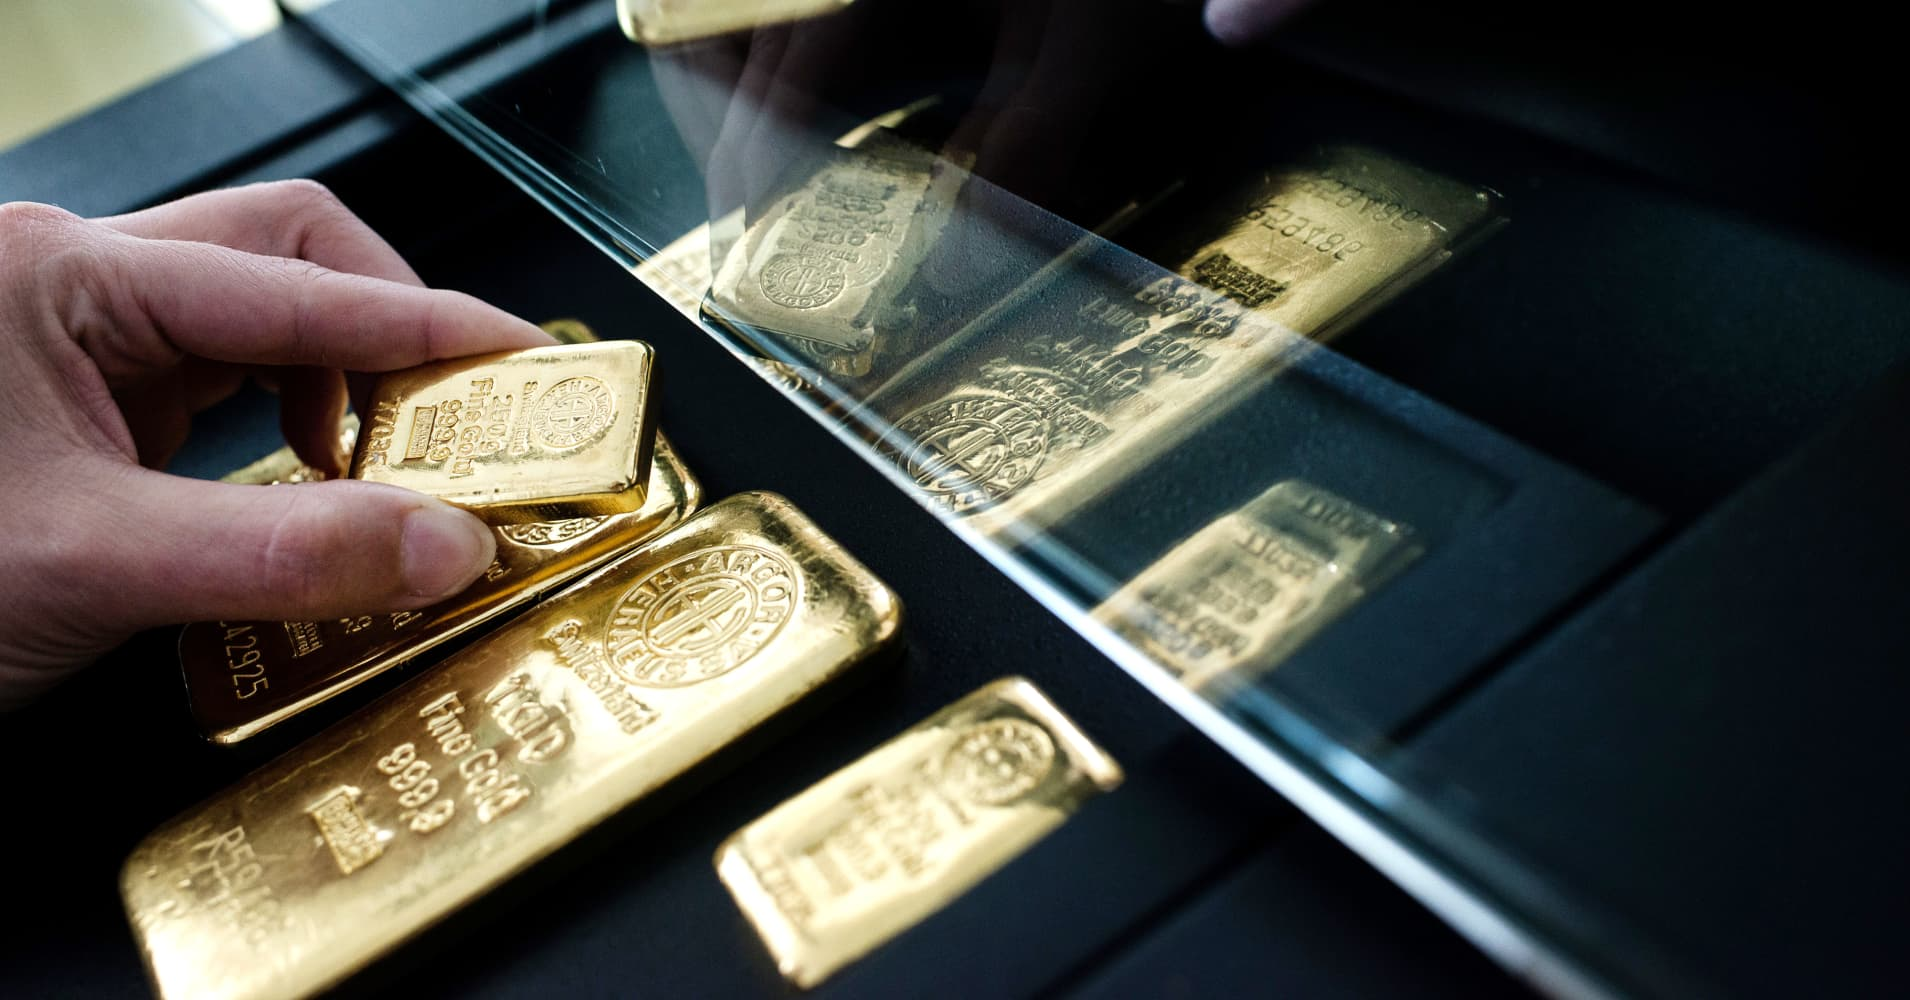 Gold starts the year off strong—and some say it's about to get even better for bullion